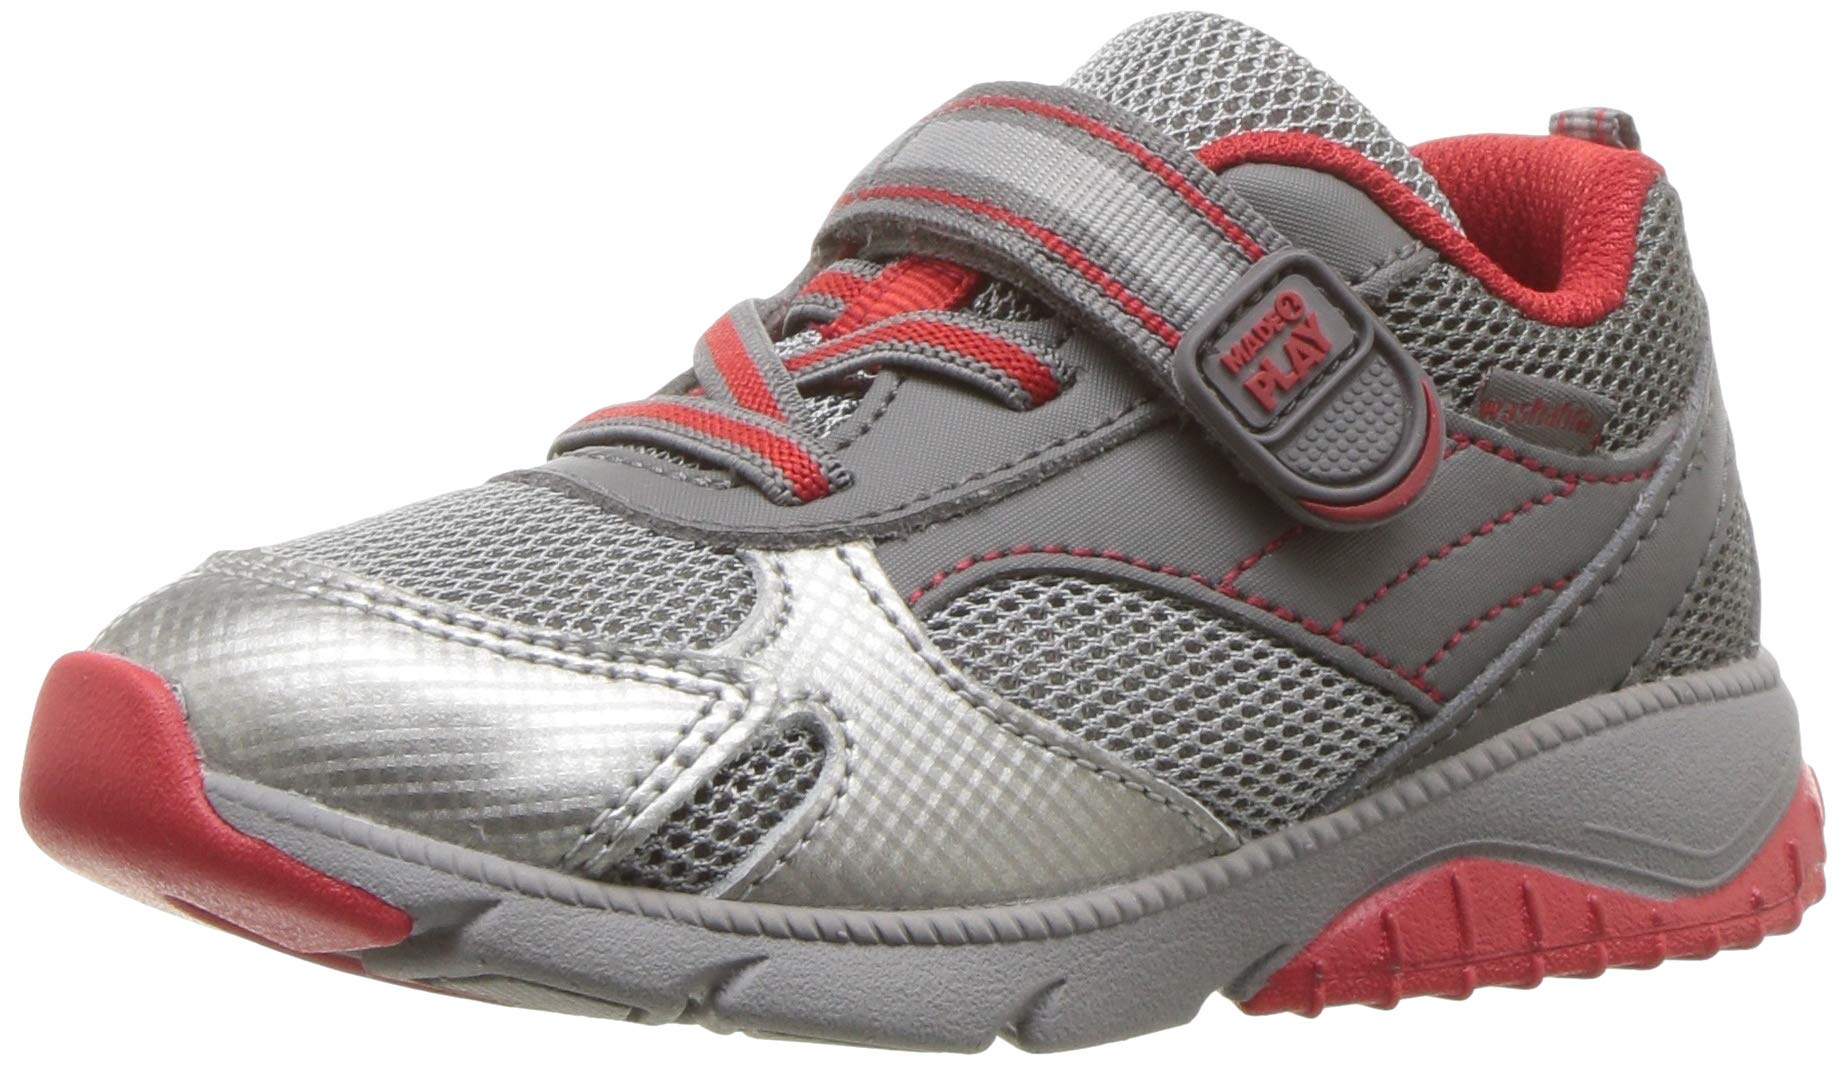 Stride Rite Baby Indy Boy's and Girl's Premium Leather Sneaker, Grey/red, 8.5 M US Toddler by Stride Rite